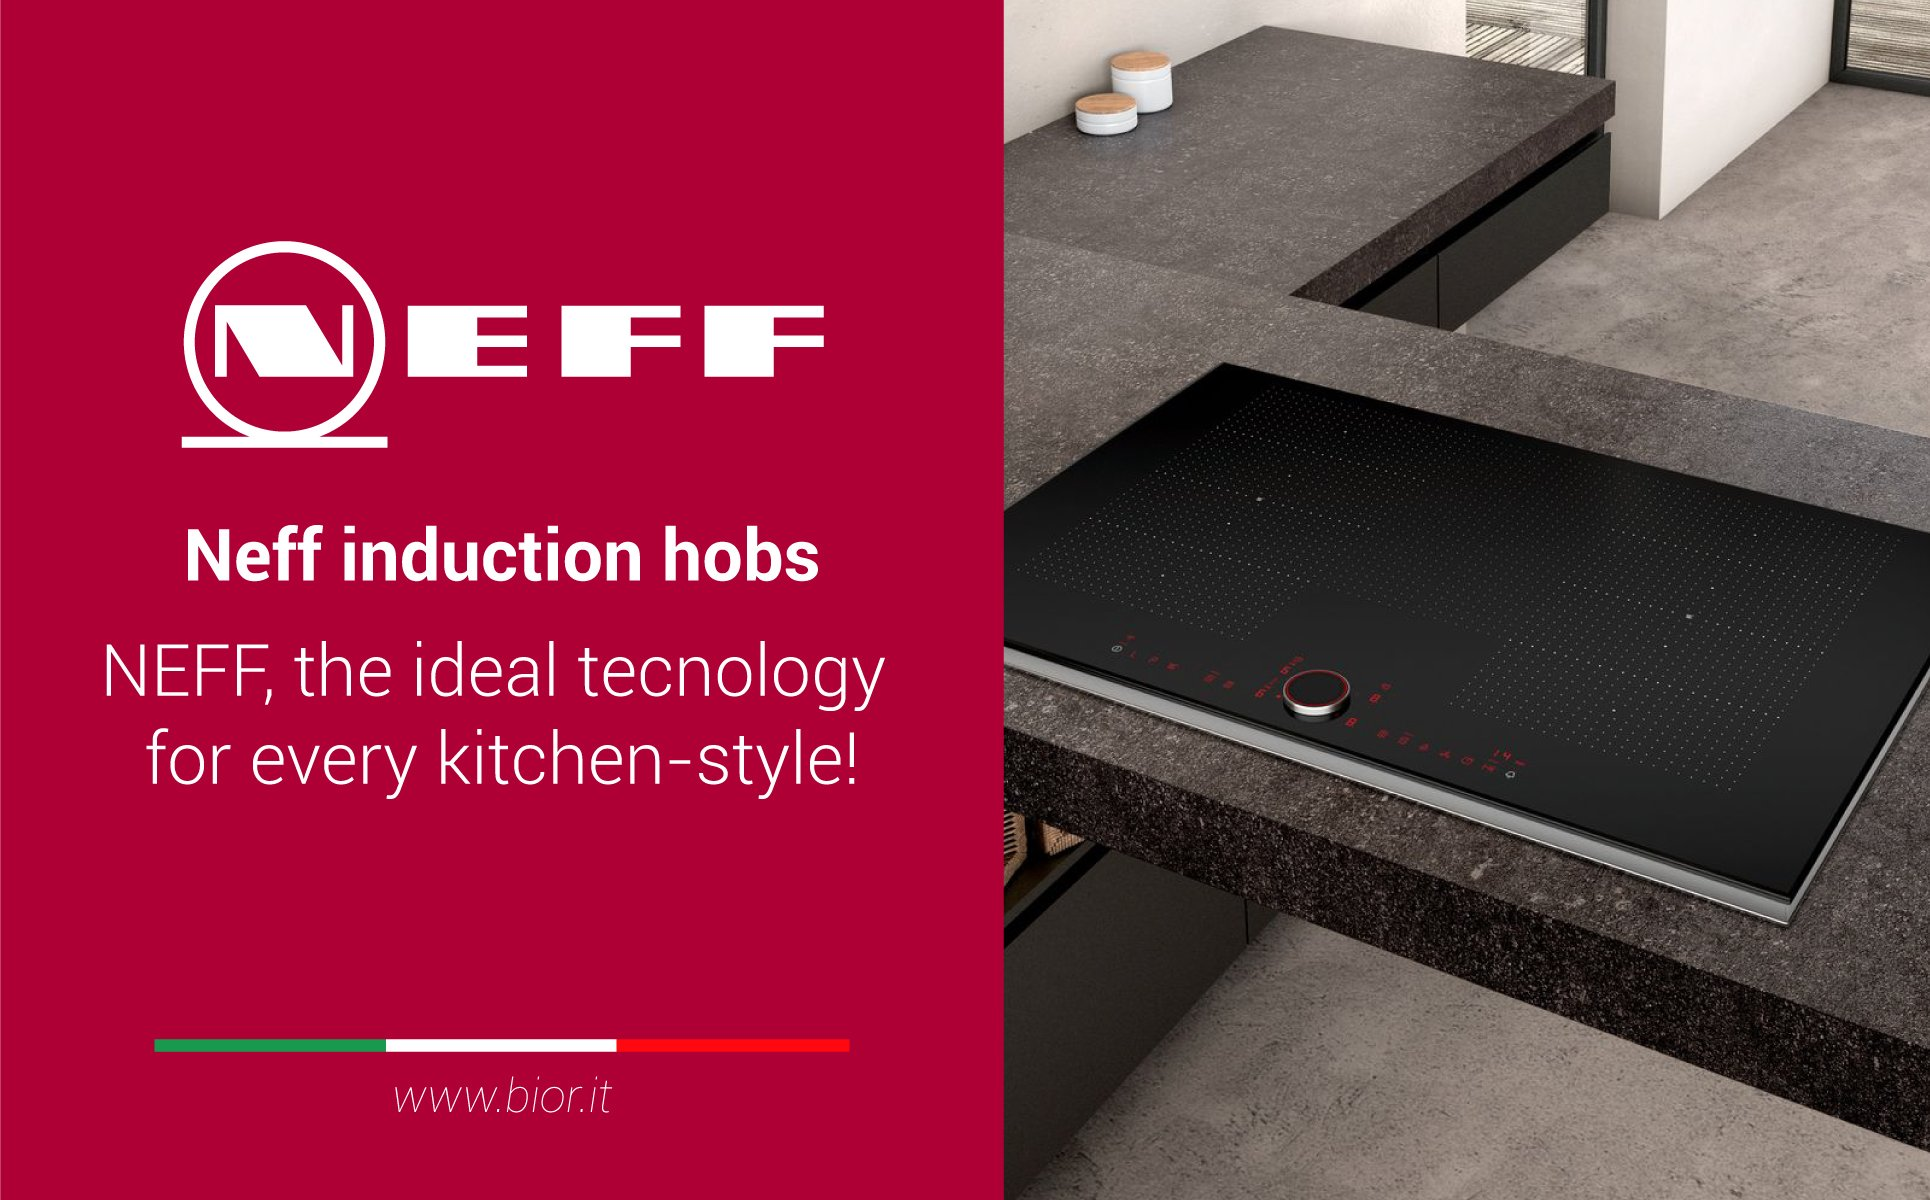 neff induction hobs